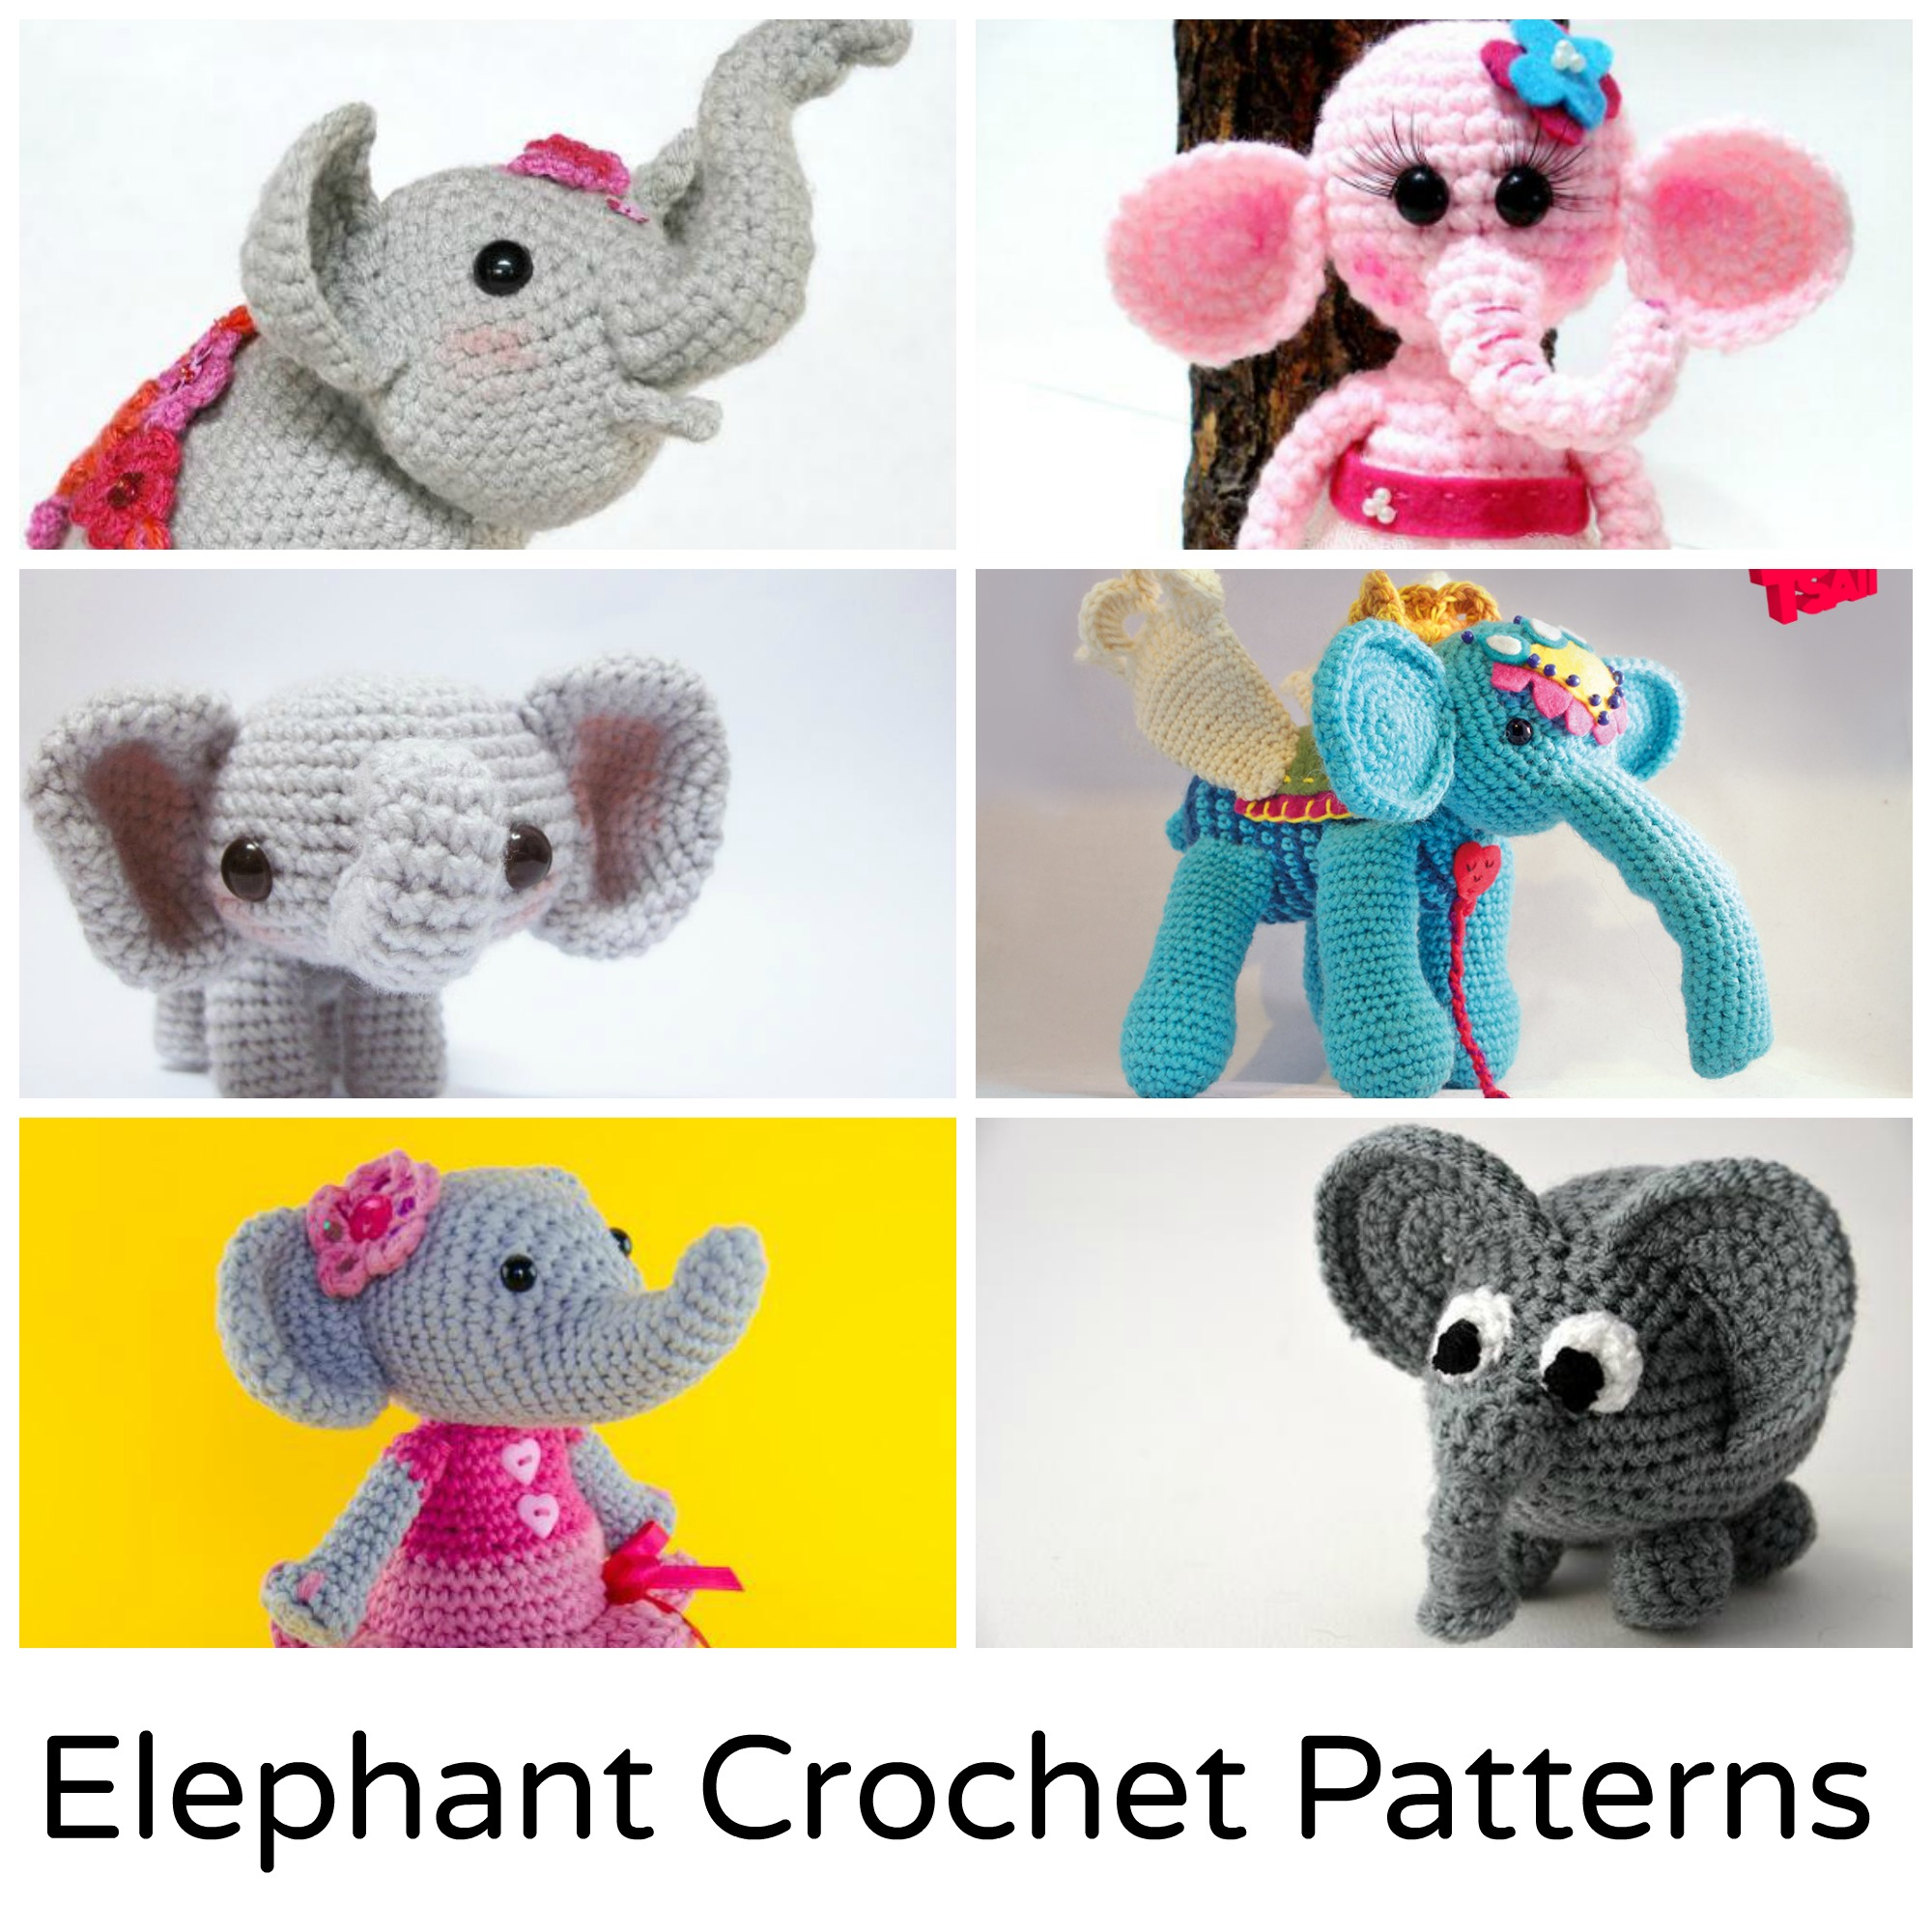 Elephant Crochet Patterns